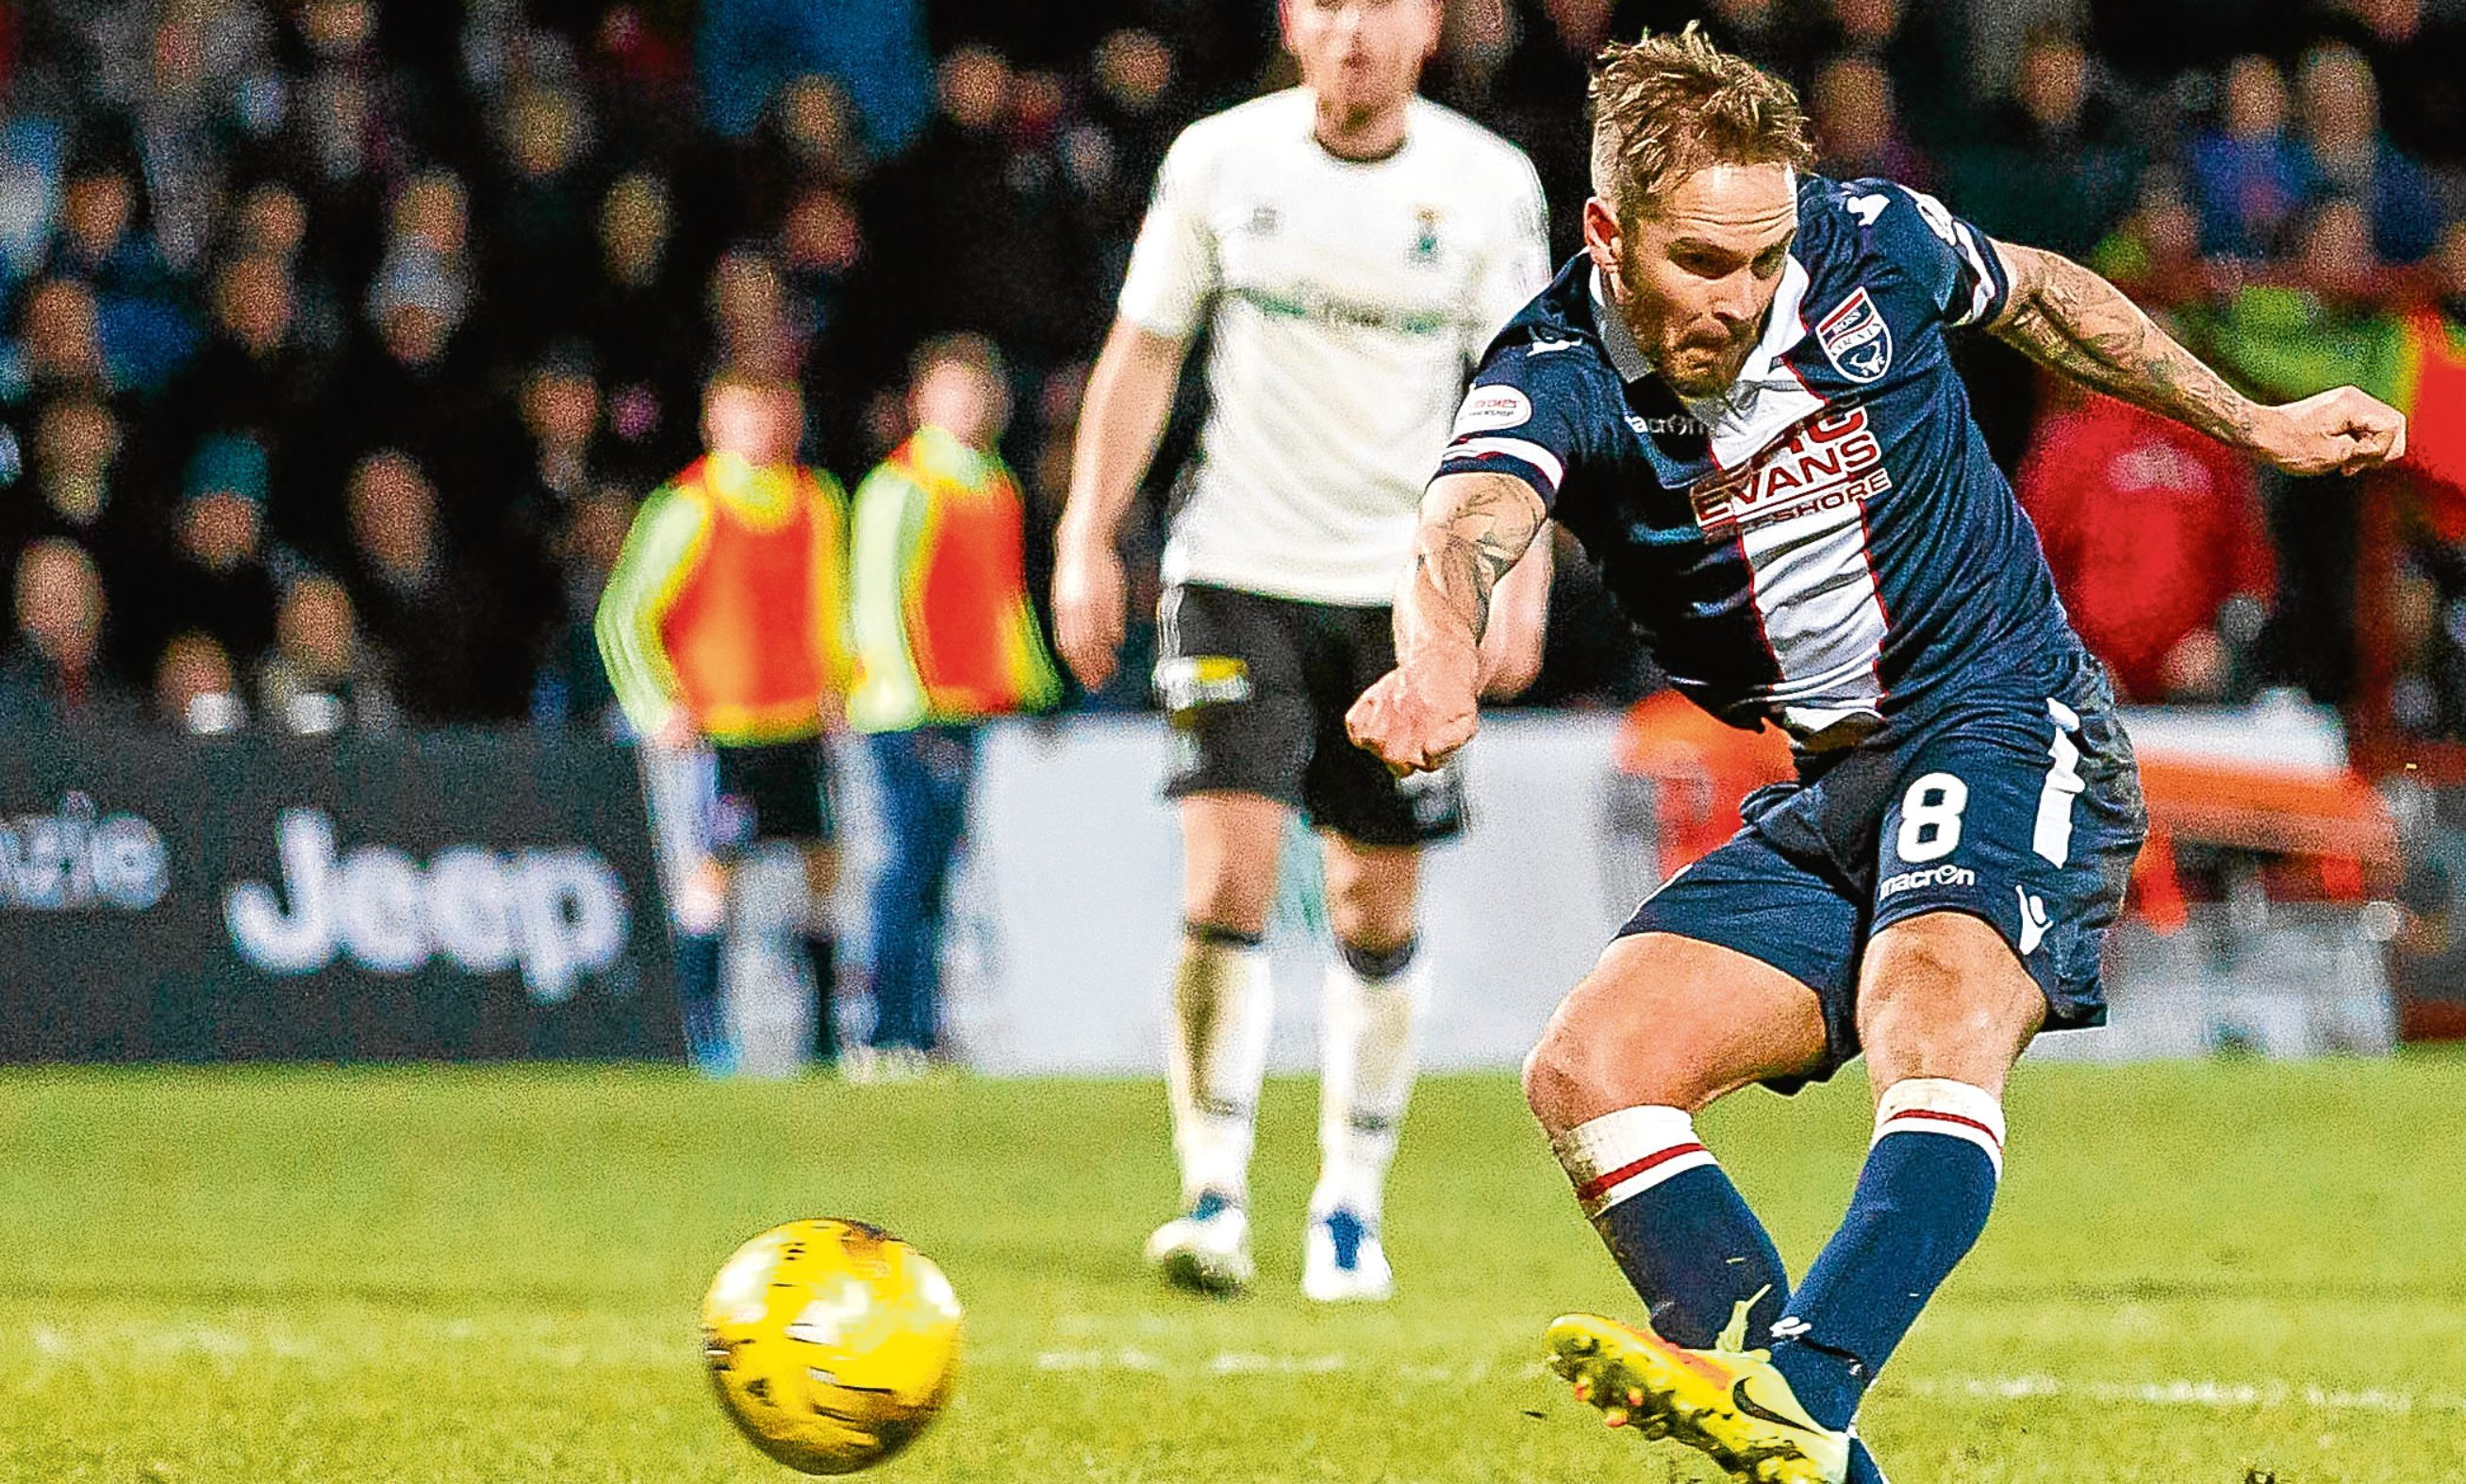 Midfielder Martin Woods played 35 times for Ross County last season but has been released by the Dingwall outfit.